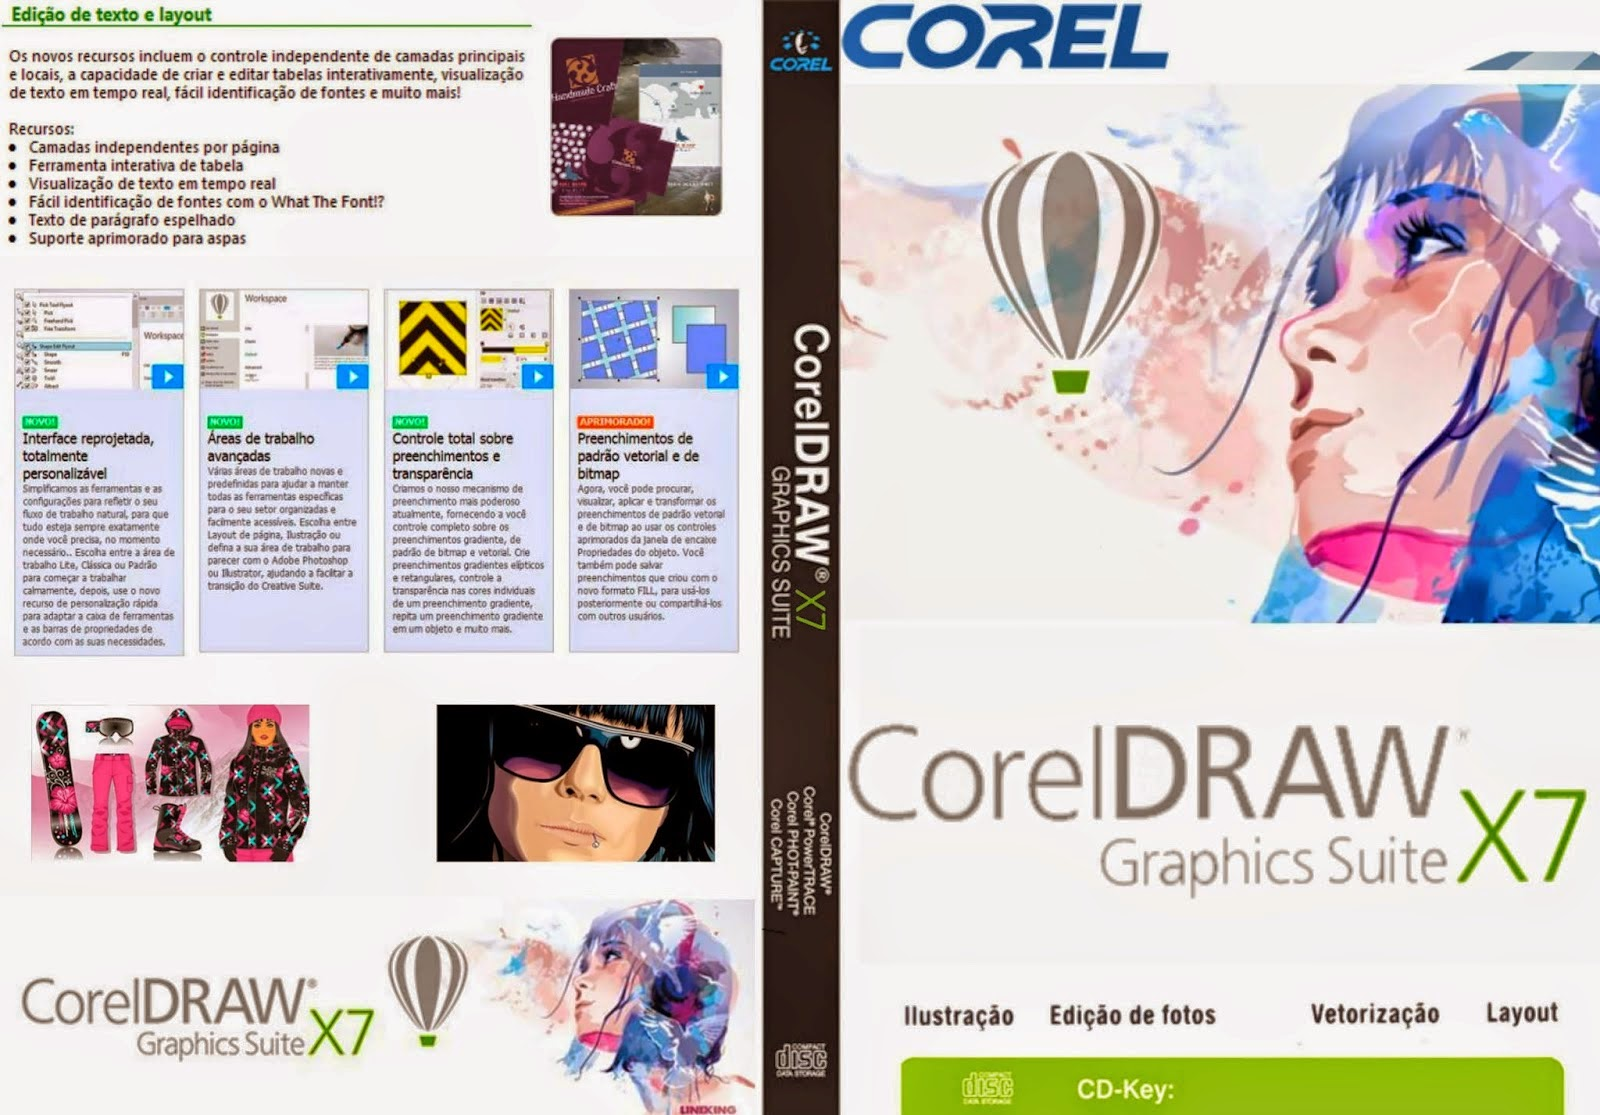 Corel DRAW Graphics Suite X7   Capa PC Software